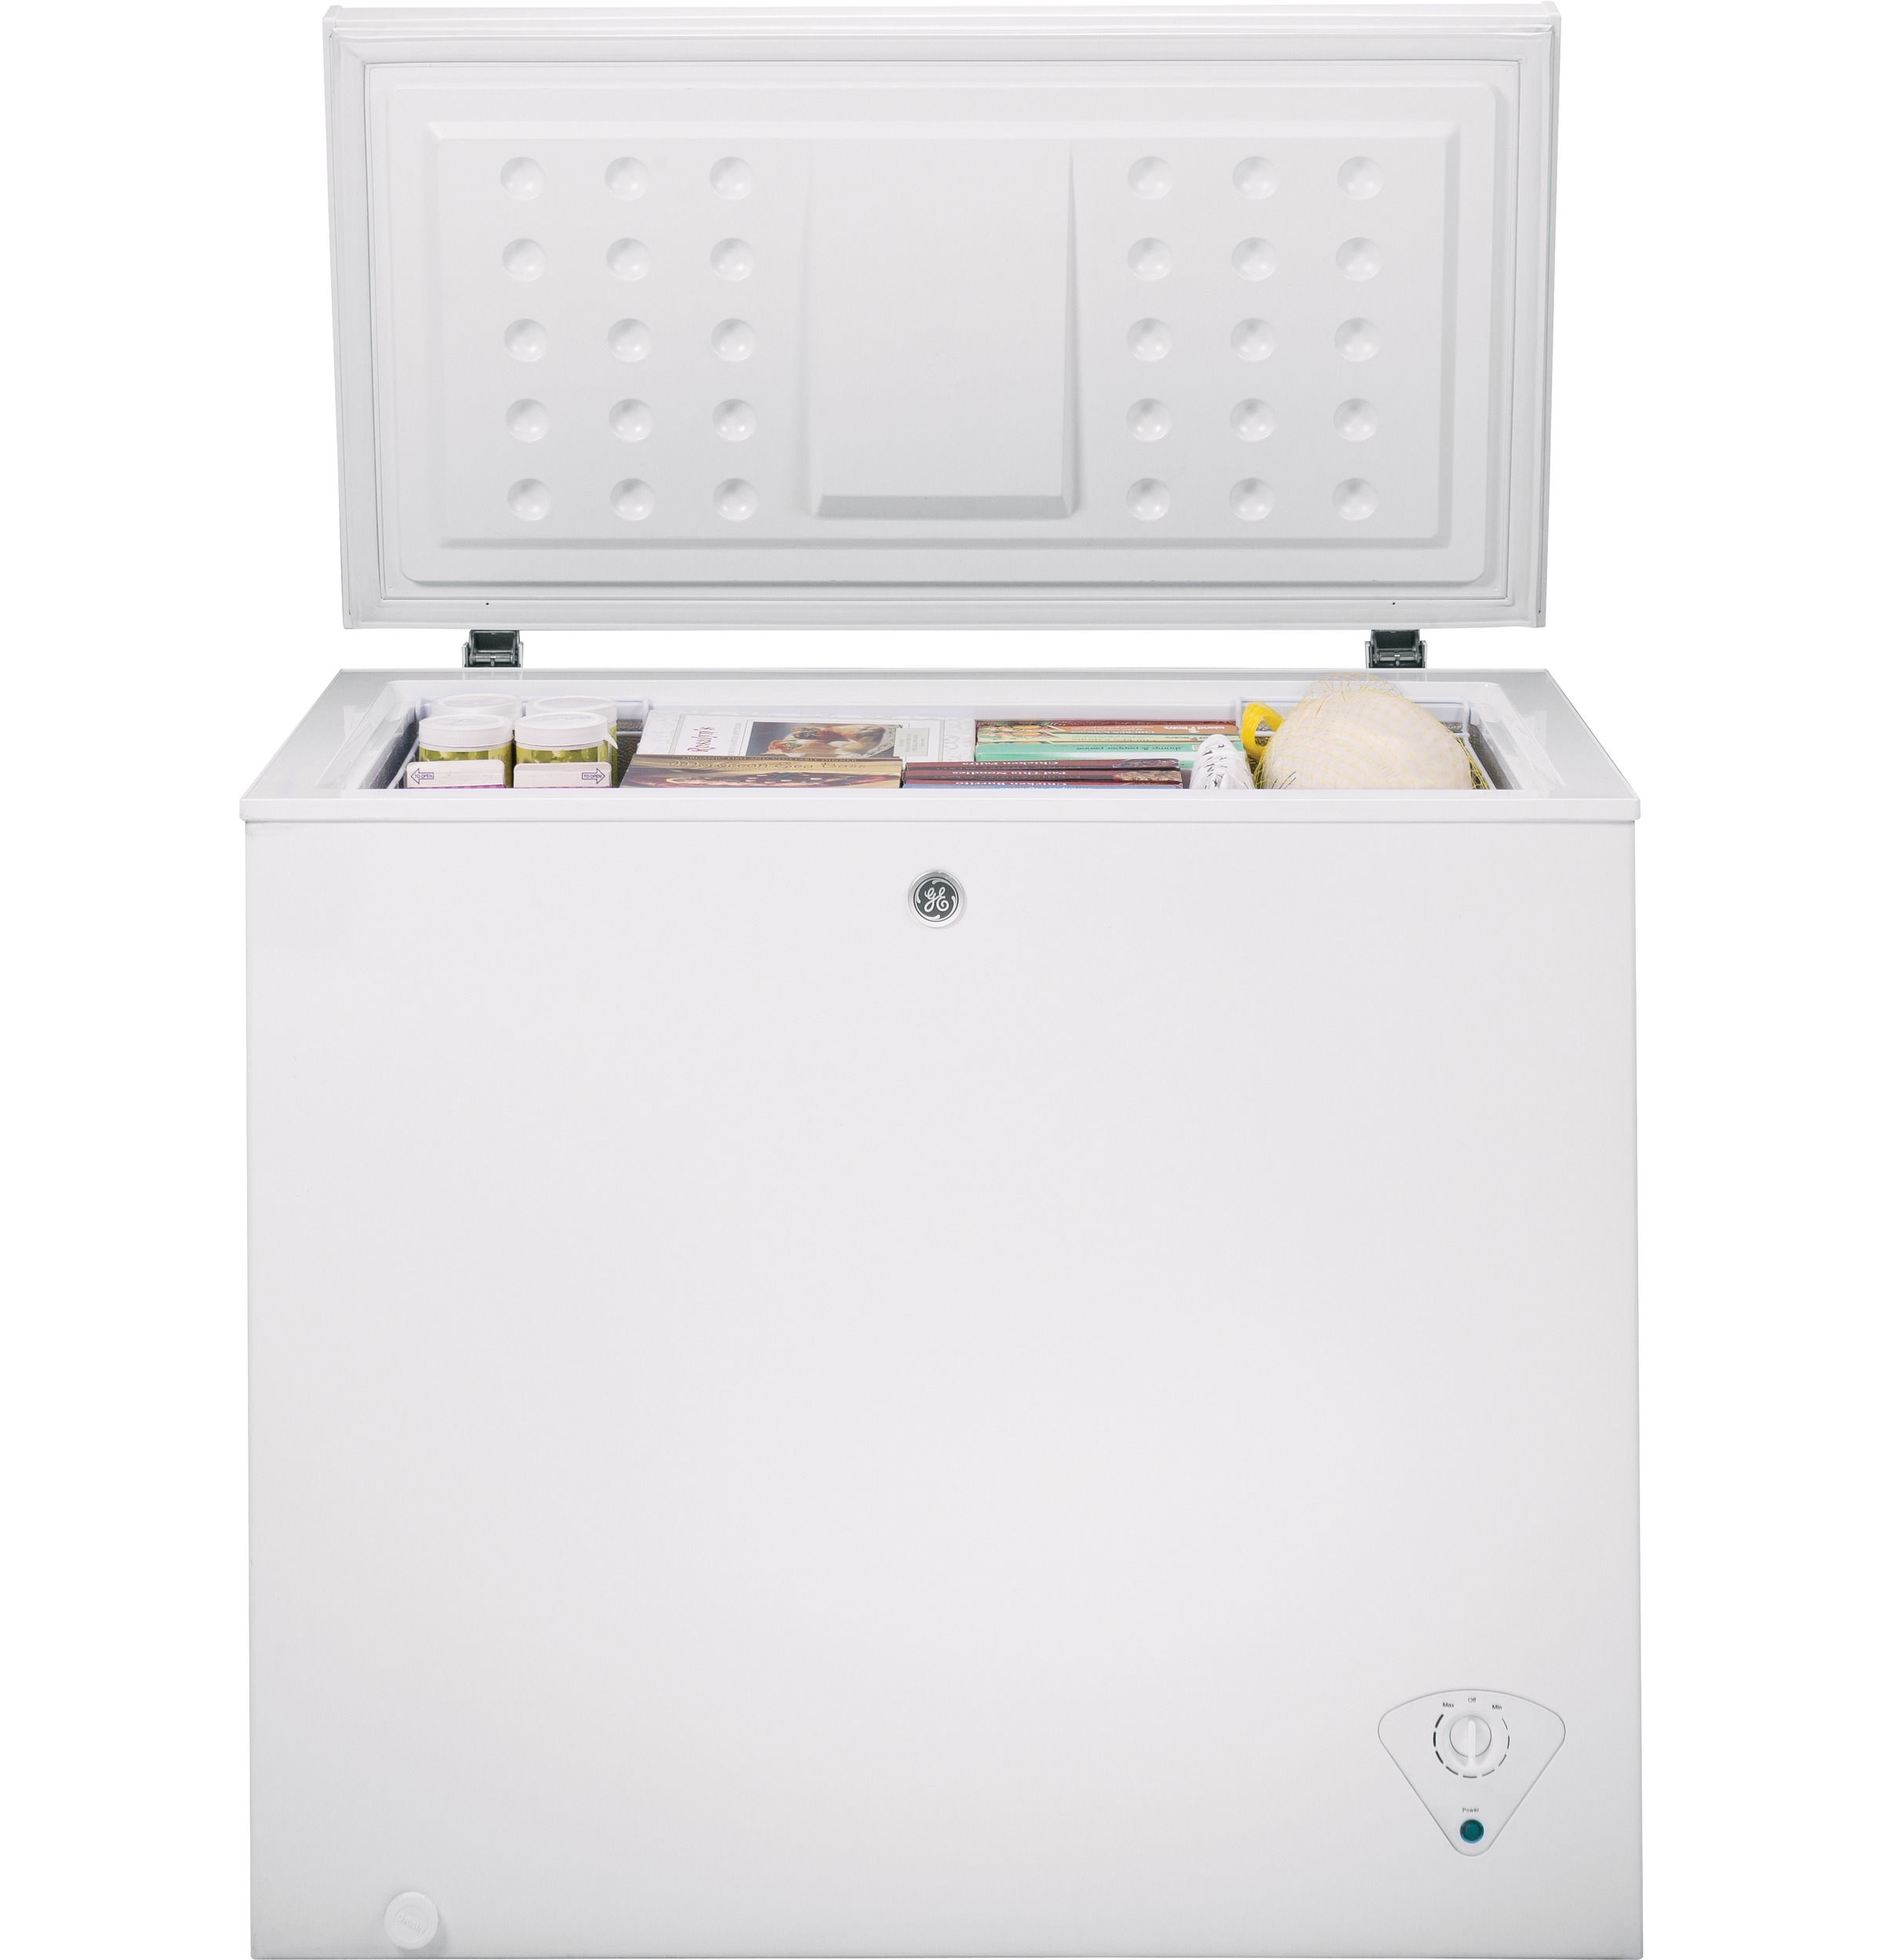 Model: FCM7SKWW | GE® 7.0 Cu. Ft. Manual Defrost Chest Freezer